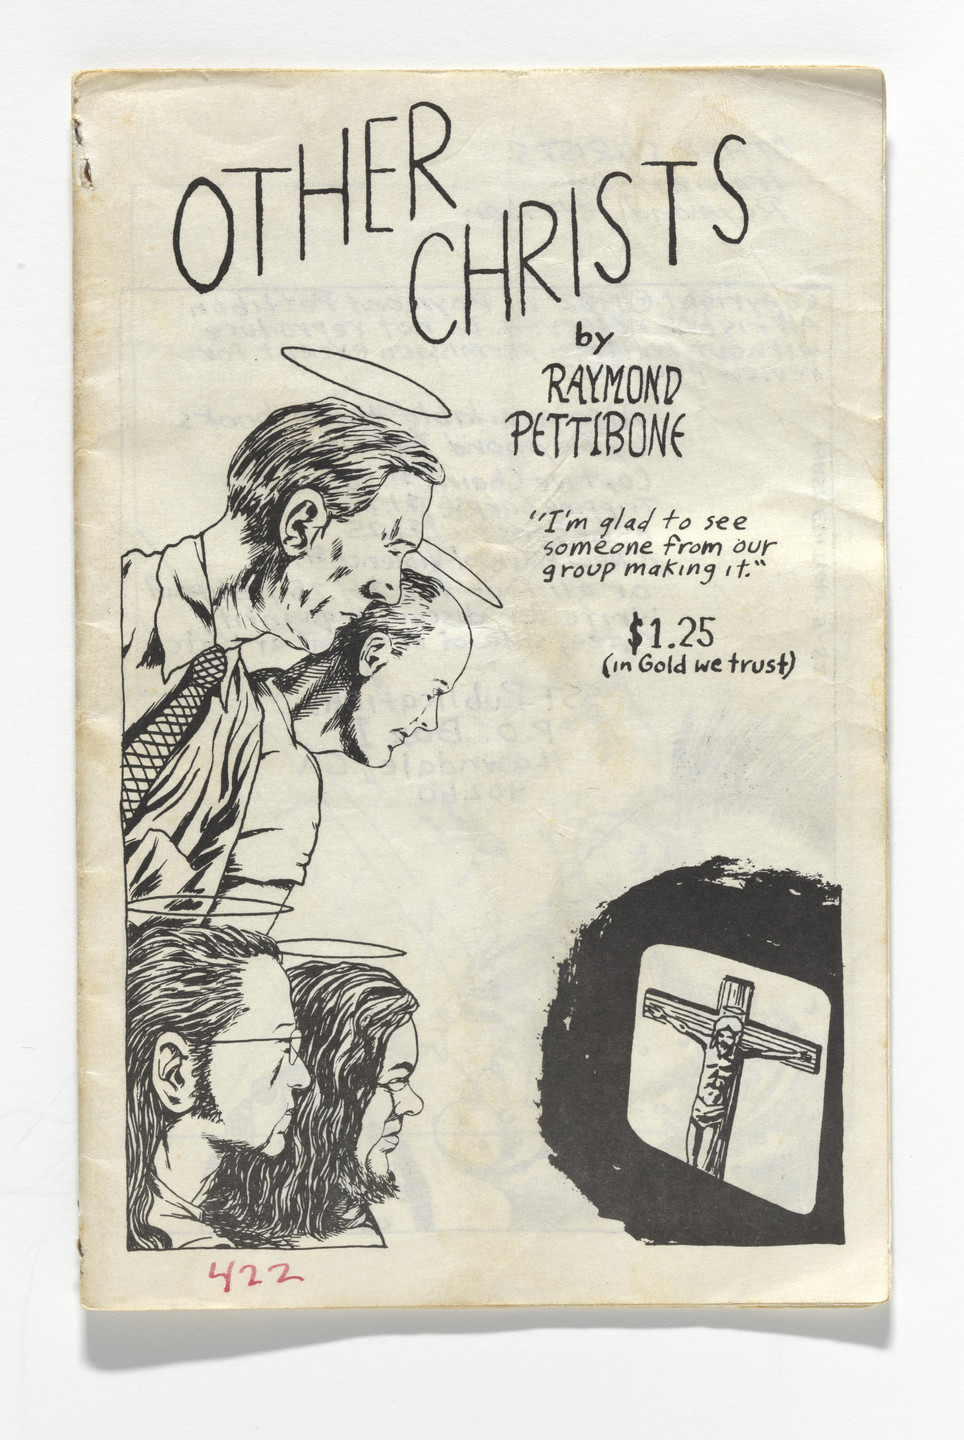 Raymond Pettibon. Other Christs. 1982